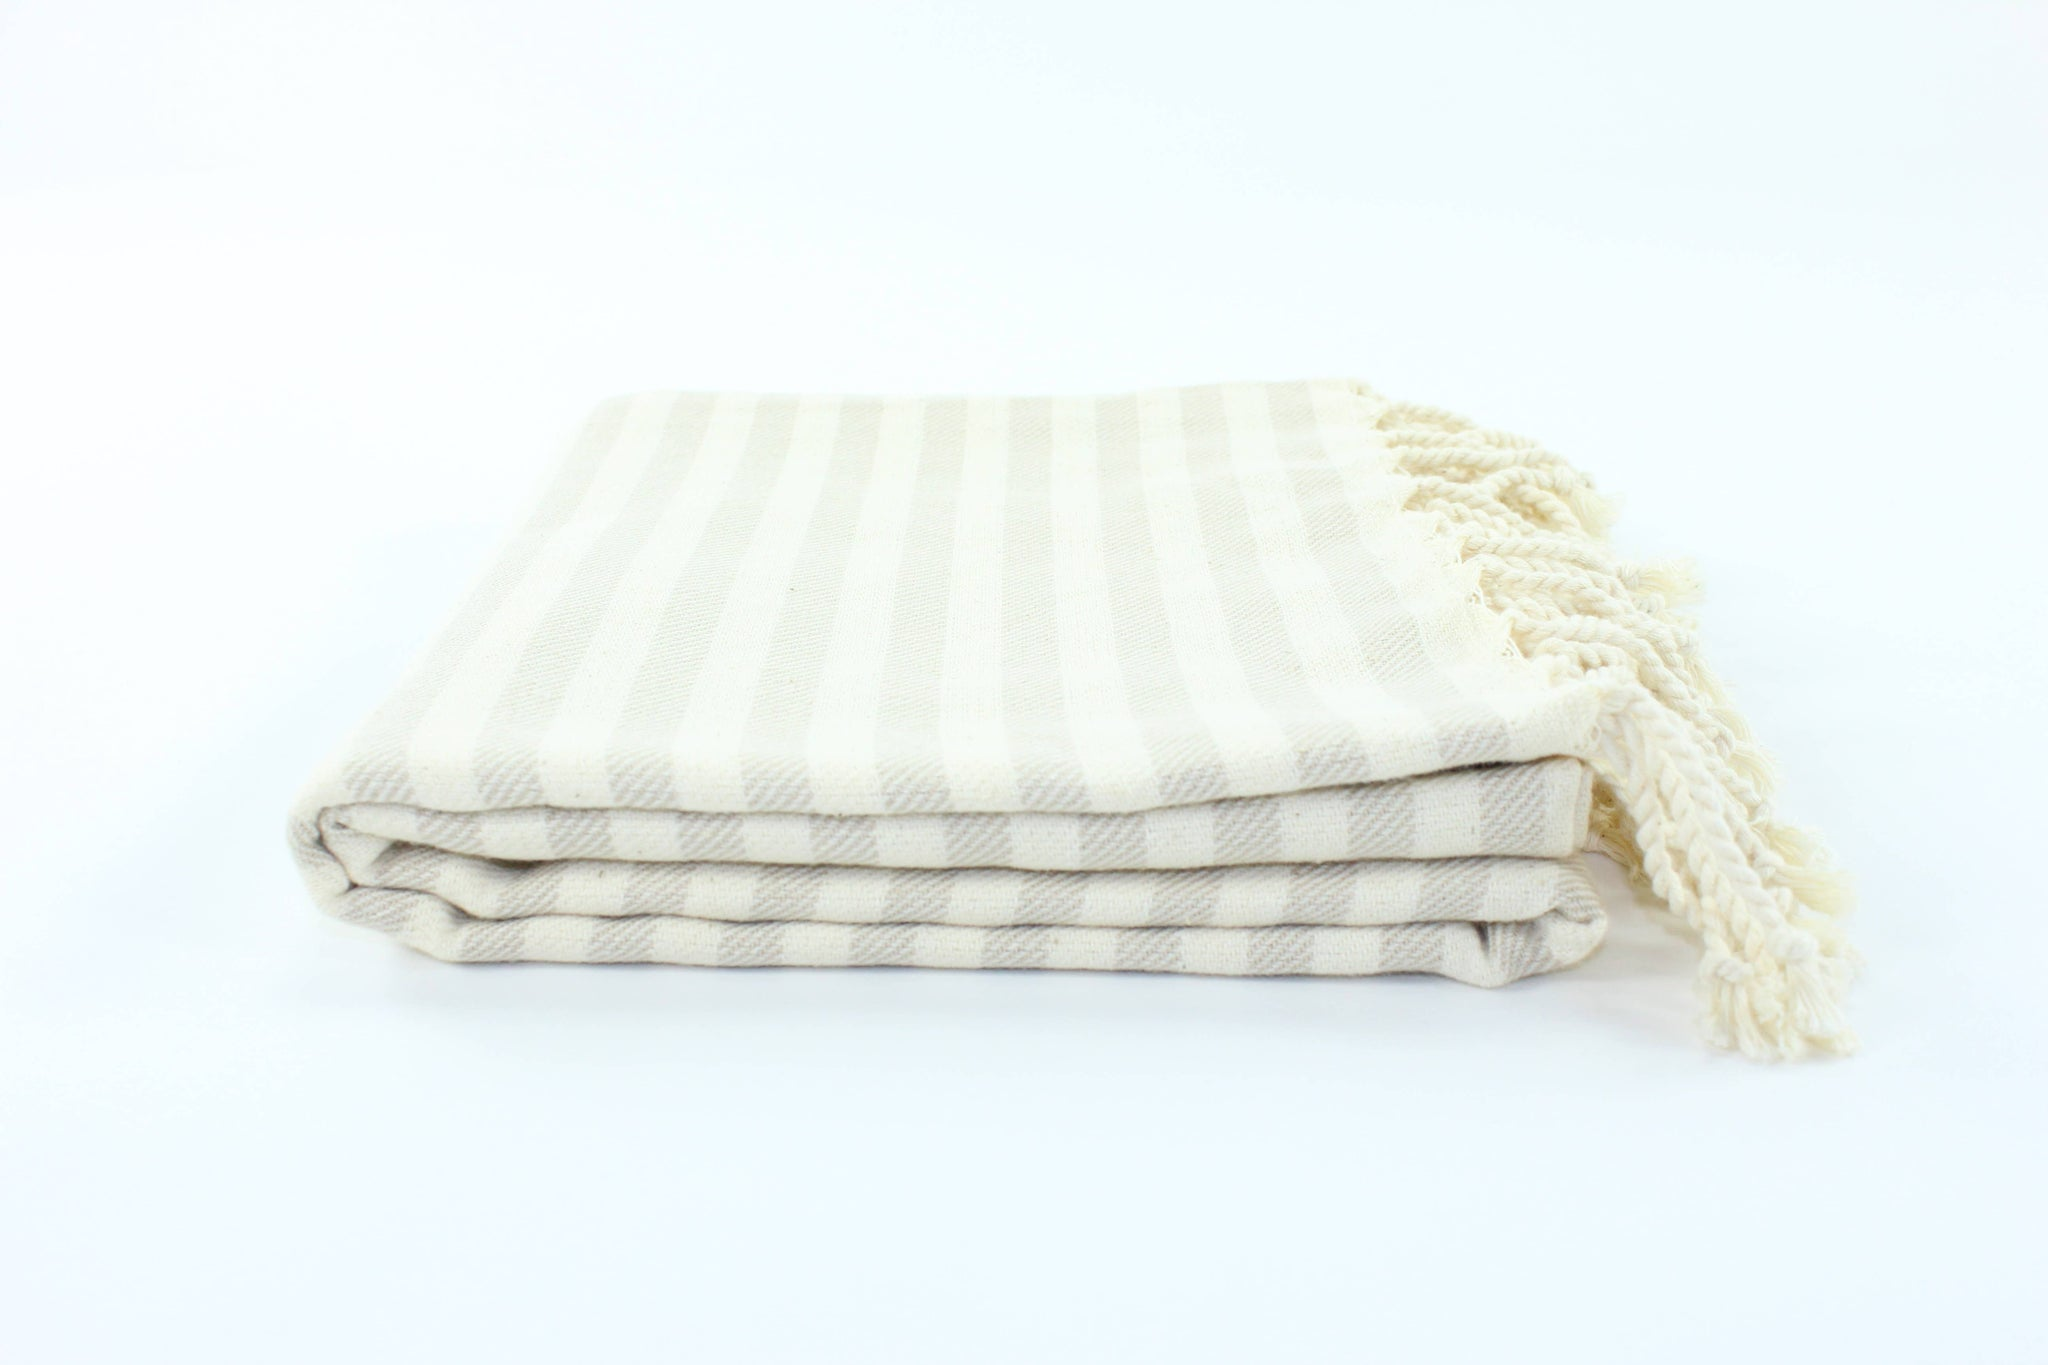 Turkish Striped Peshtemal Towel